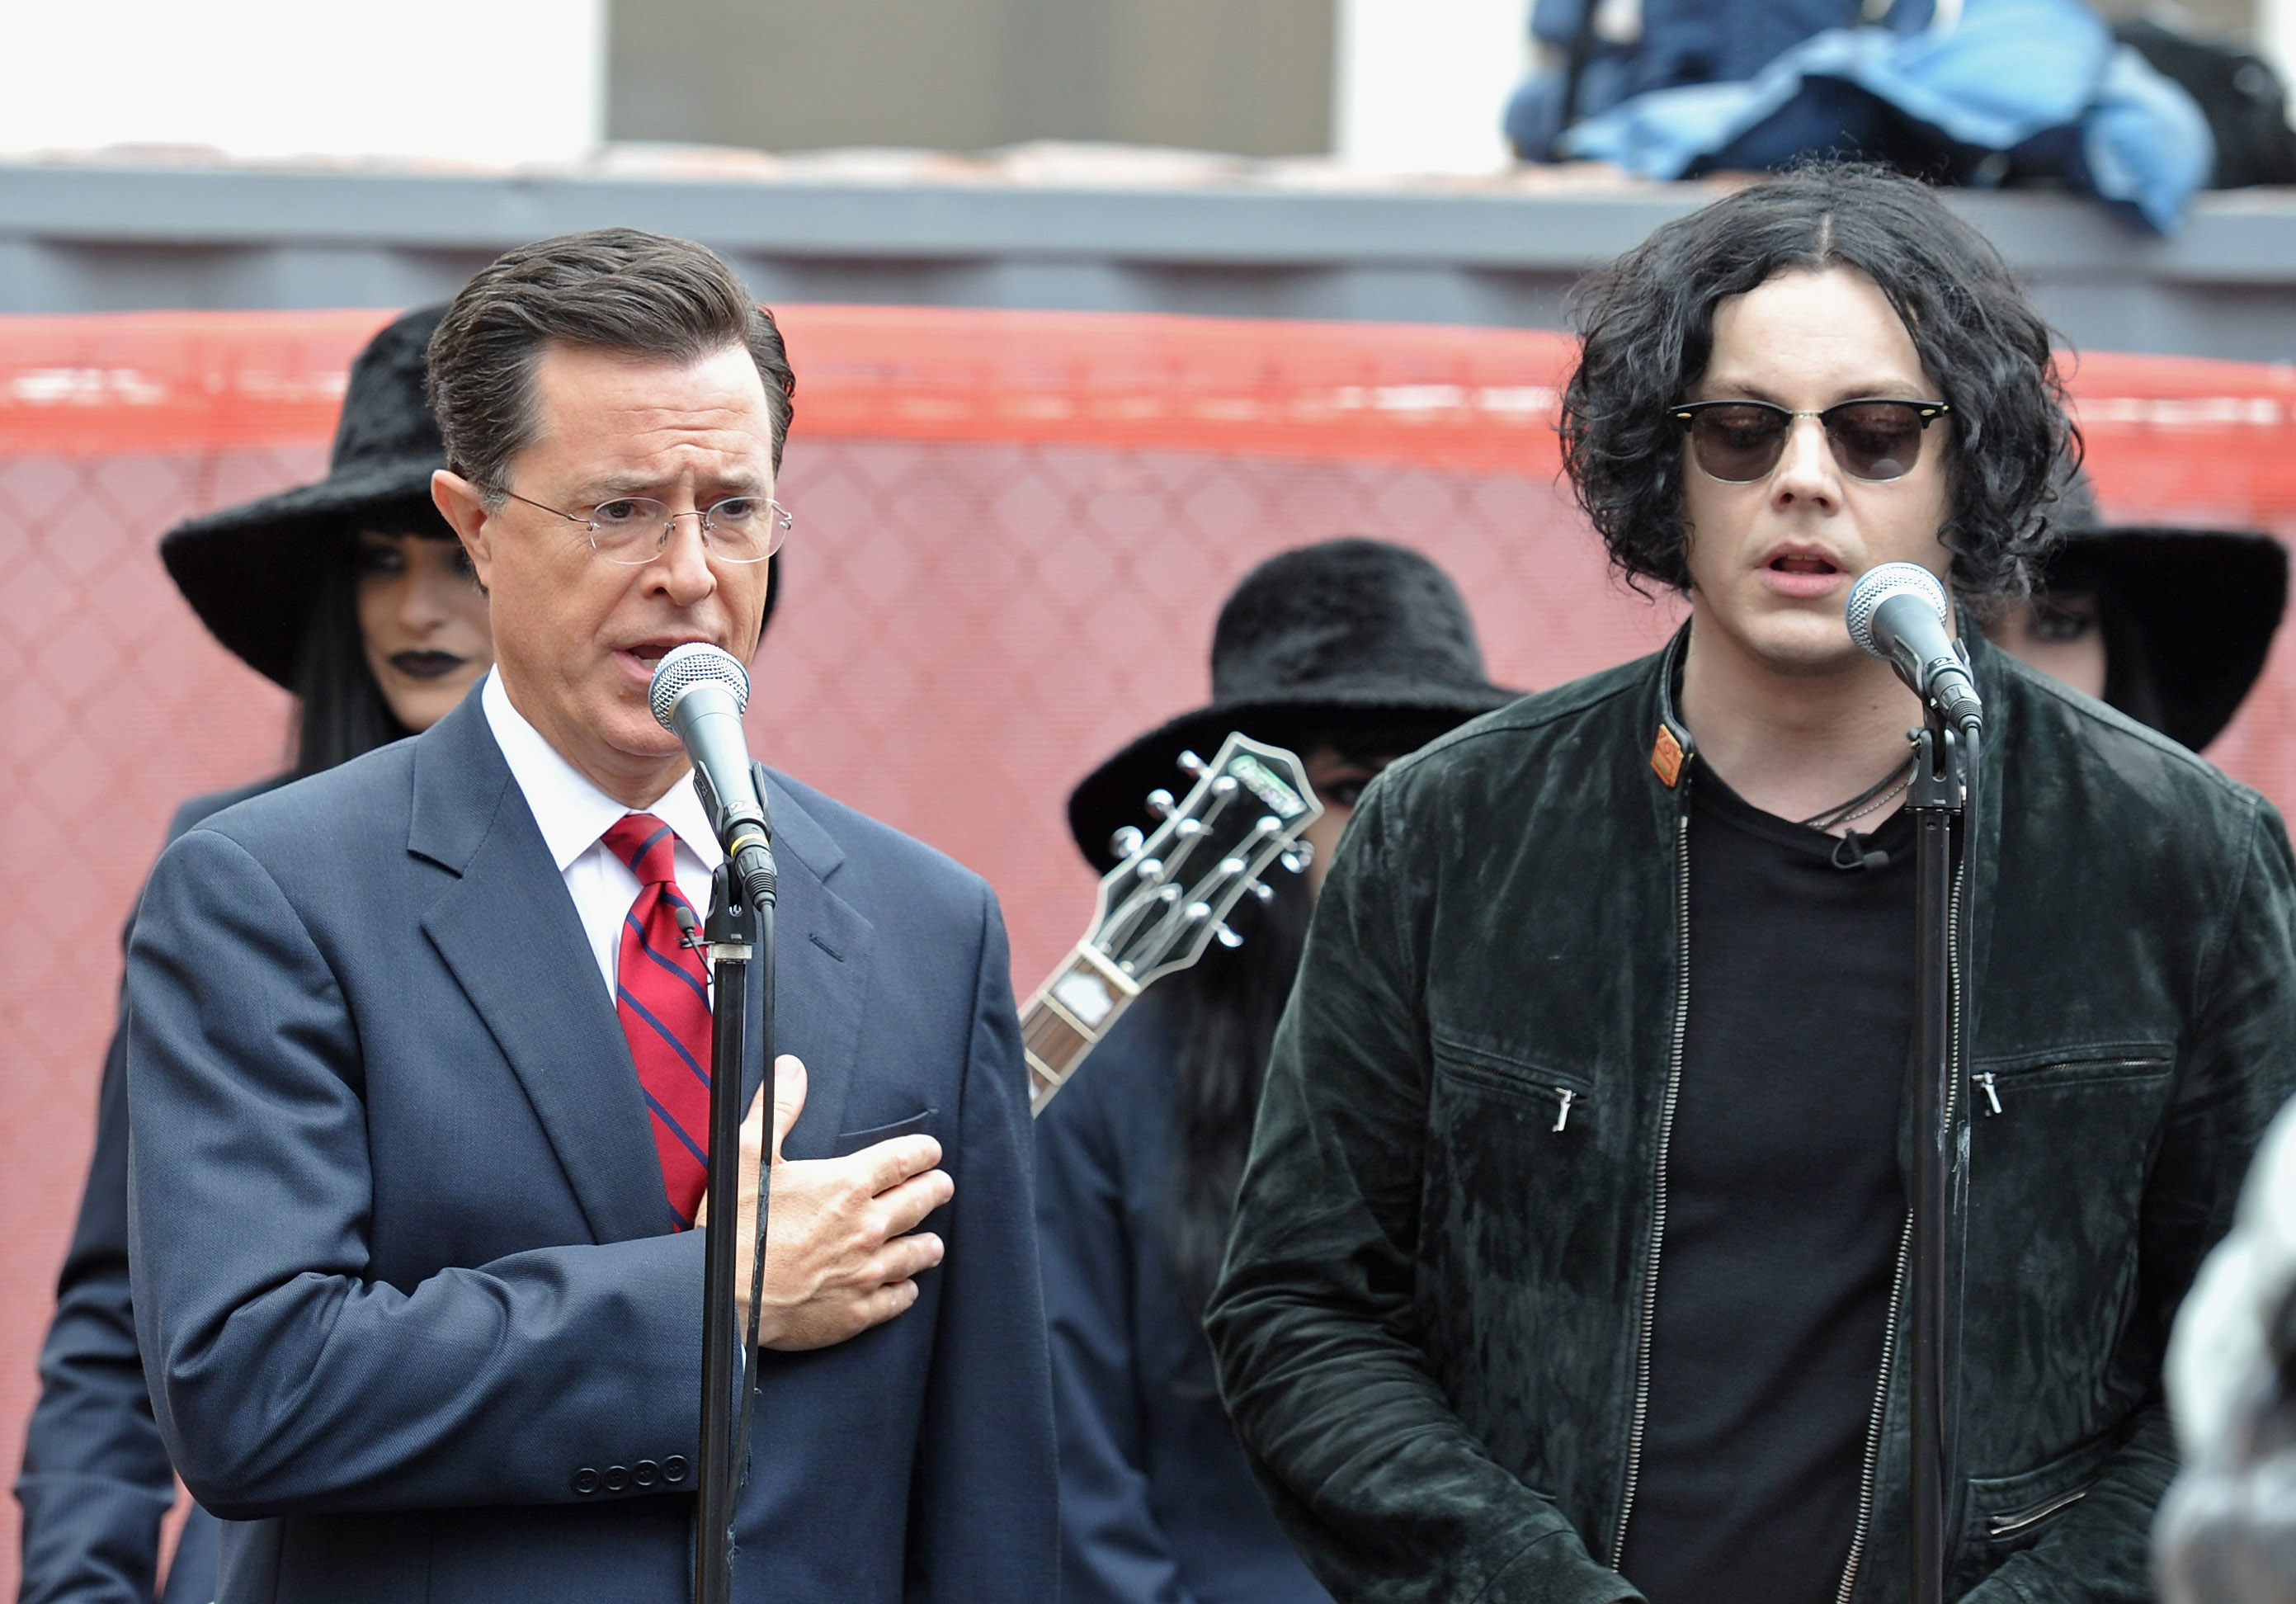 Jack White & Stephen Colbert In NYC: Photos, Video